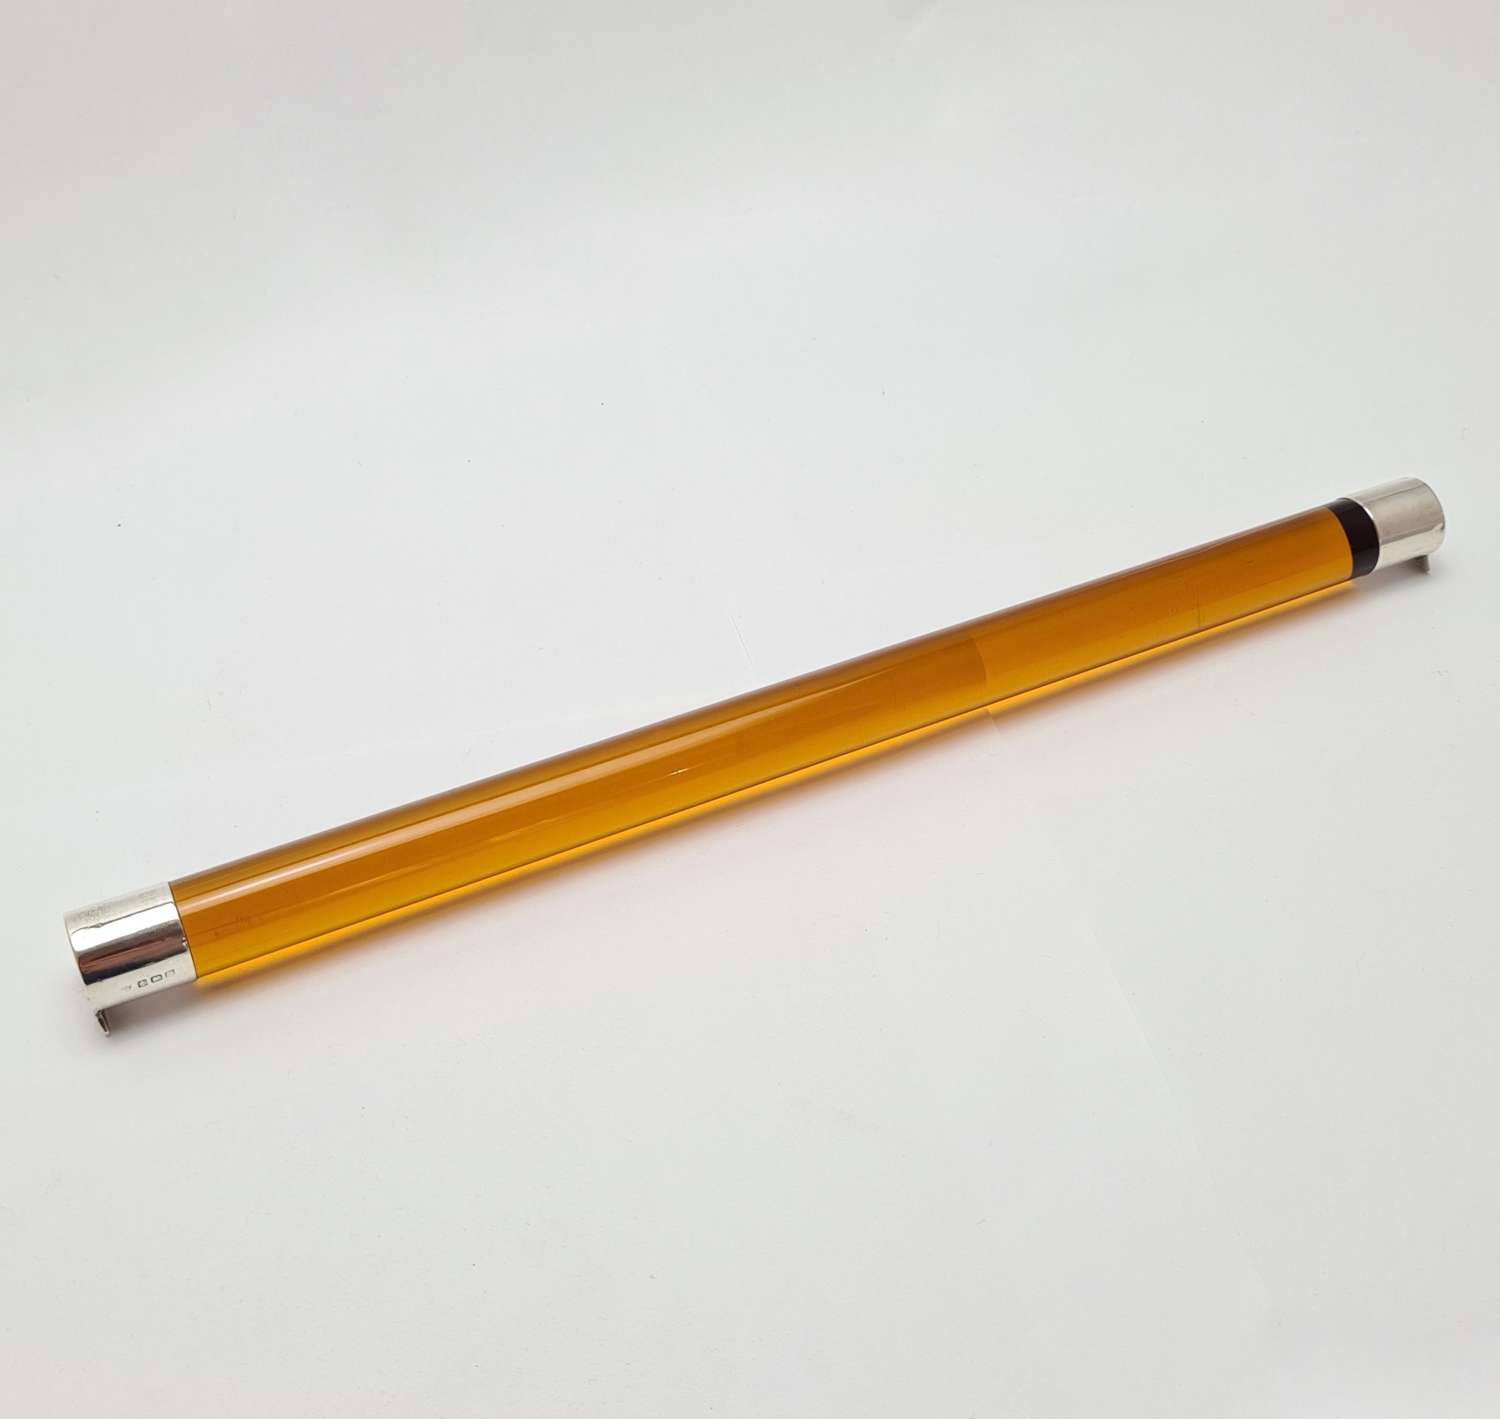 Amber Glass Ruler with Silver End Caps